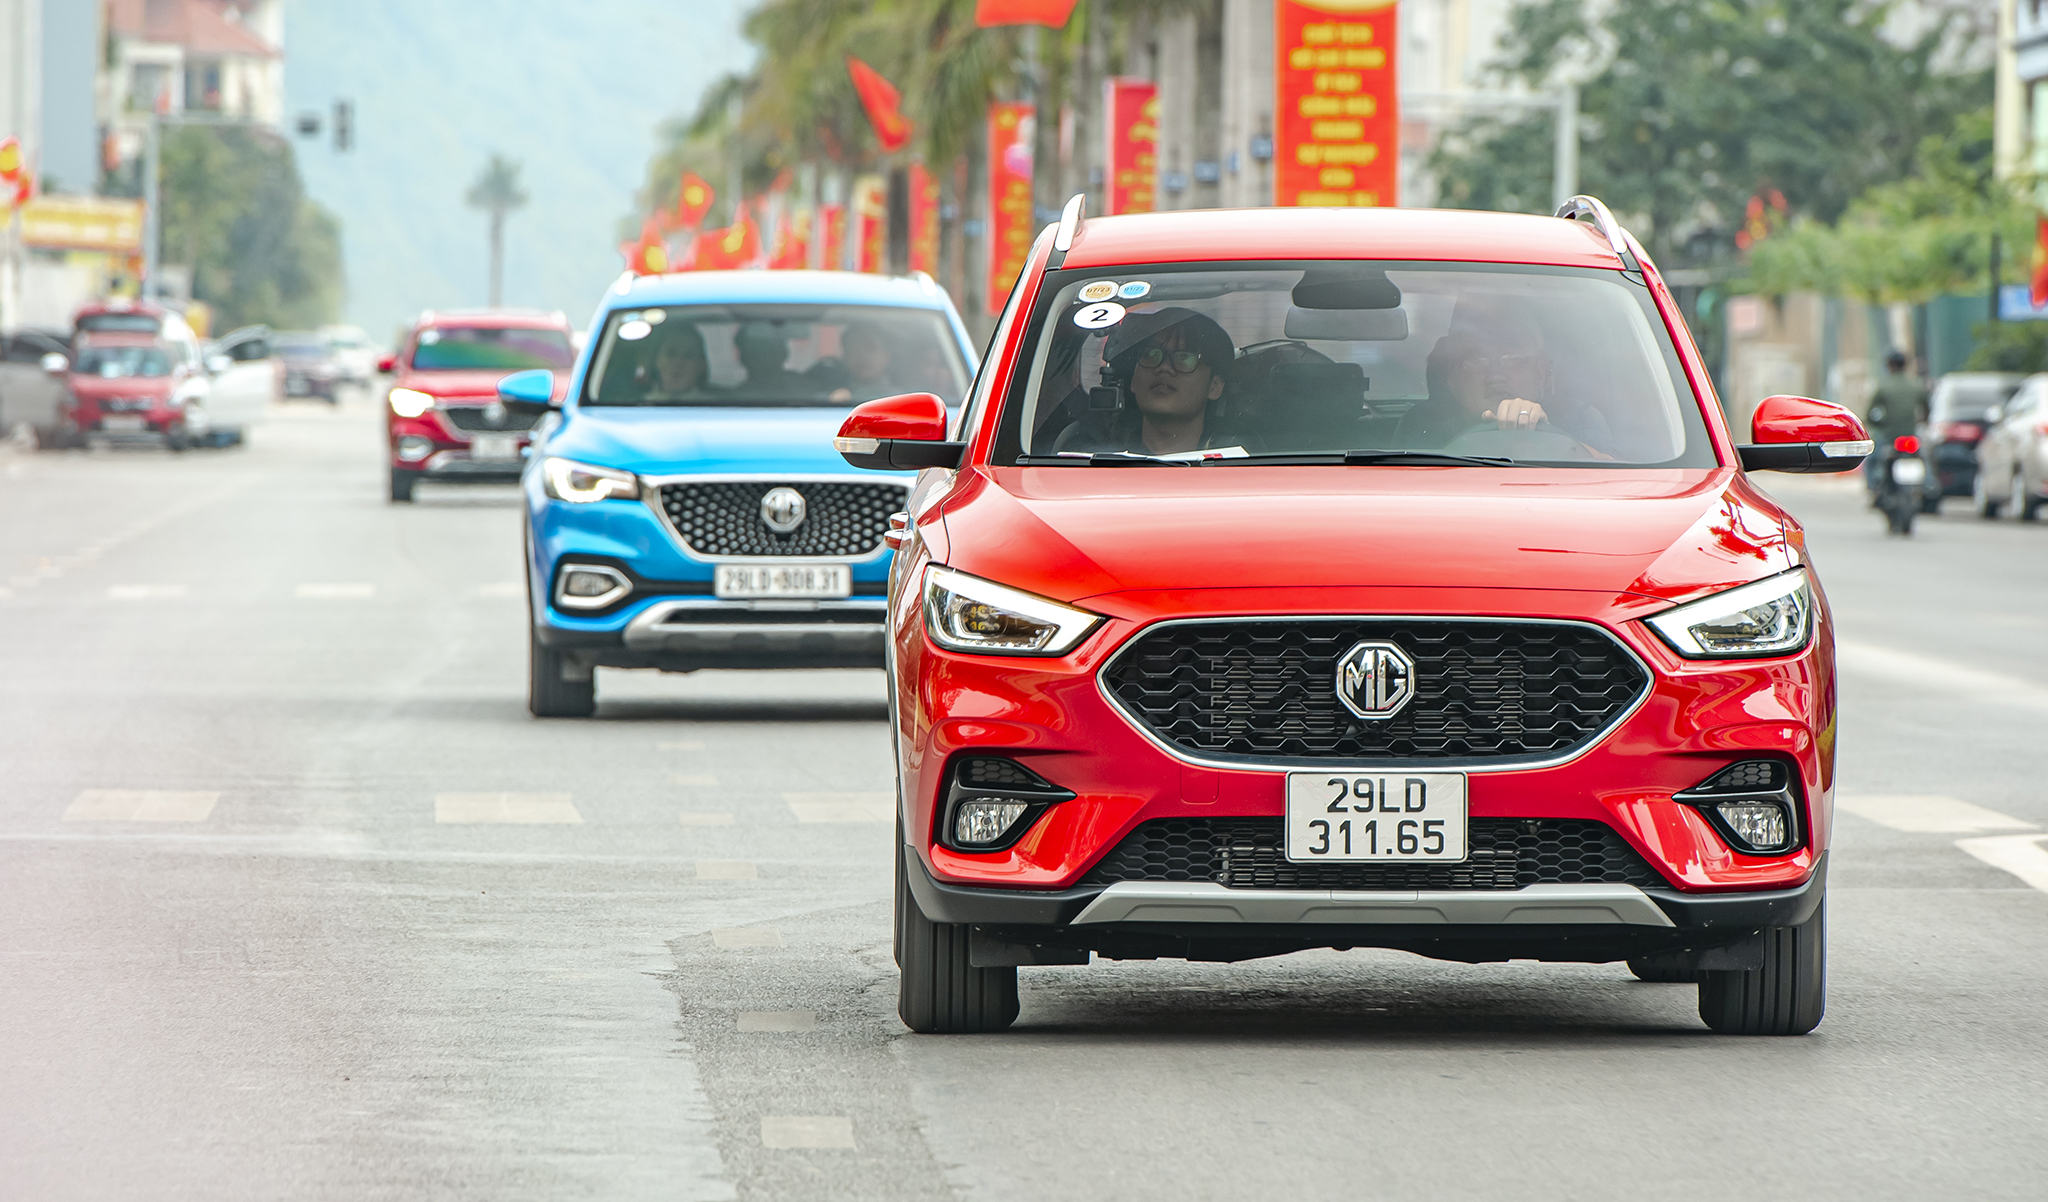 MG ZS 2021 evaluation: Choose a reasonable price range of 600 million dong dsc-7978-copy.jpg